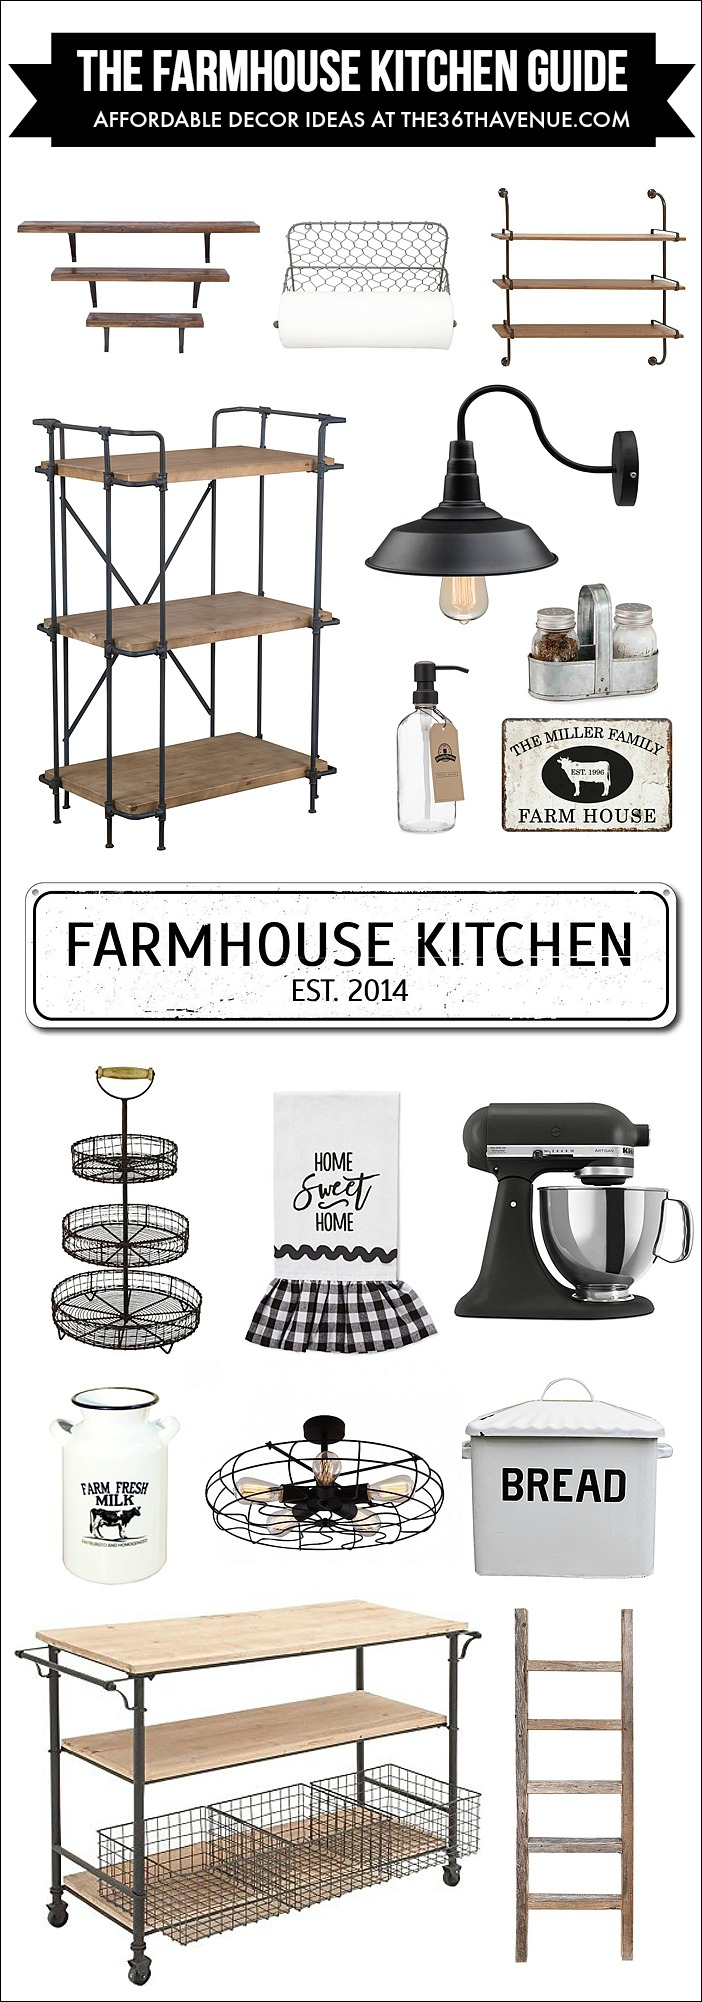 Kitchen Farmhouse Decor Ideas that are affordable and for sure perfect additions to your farmhouse decor.